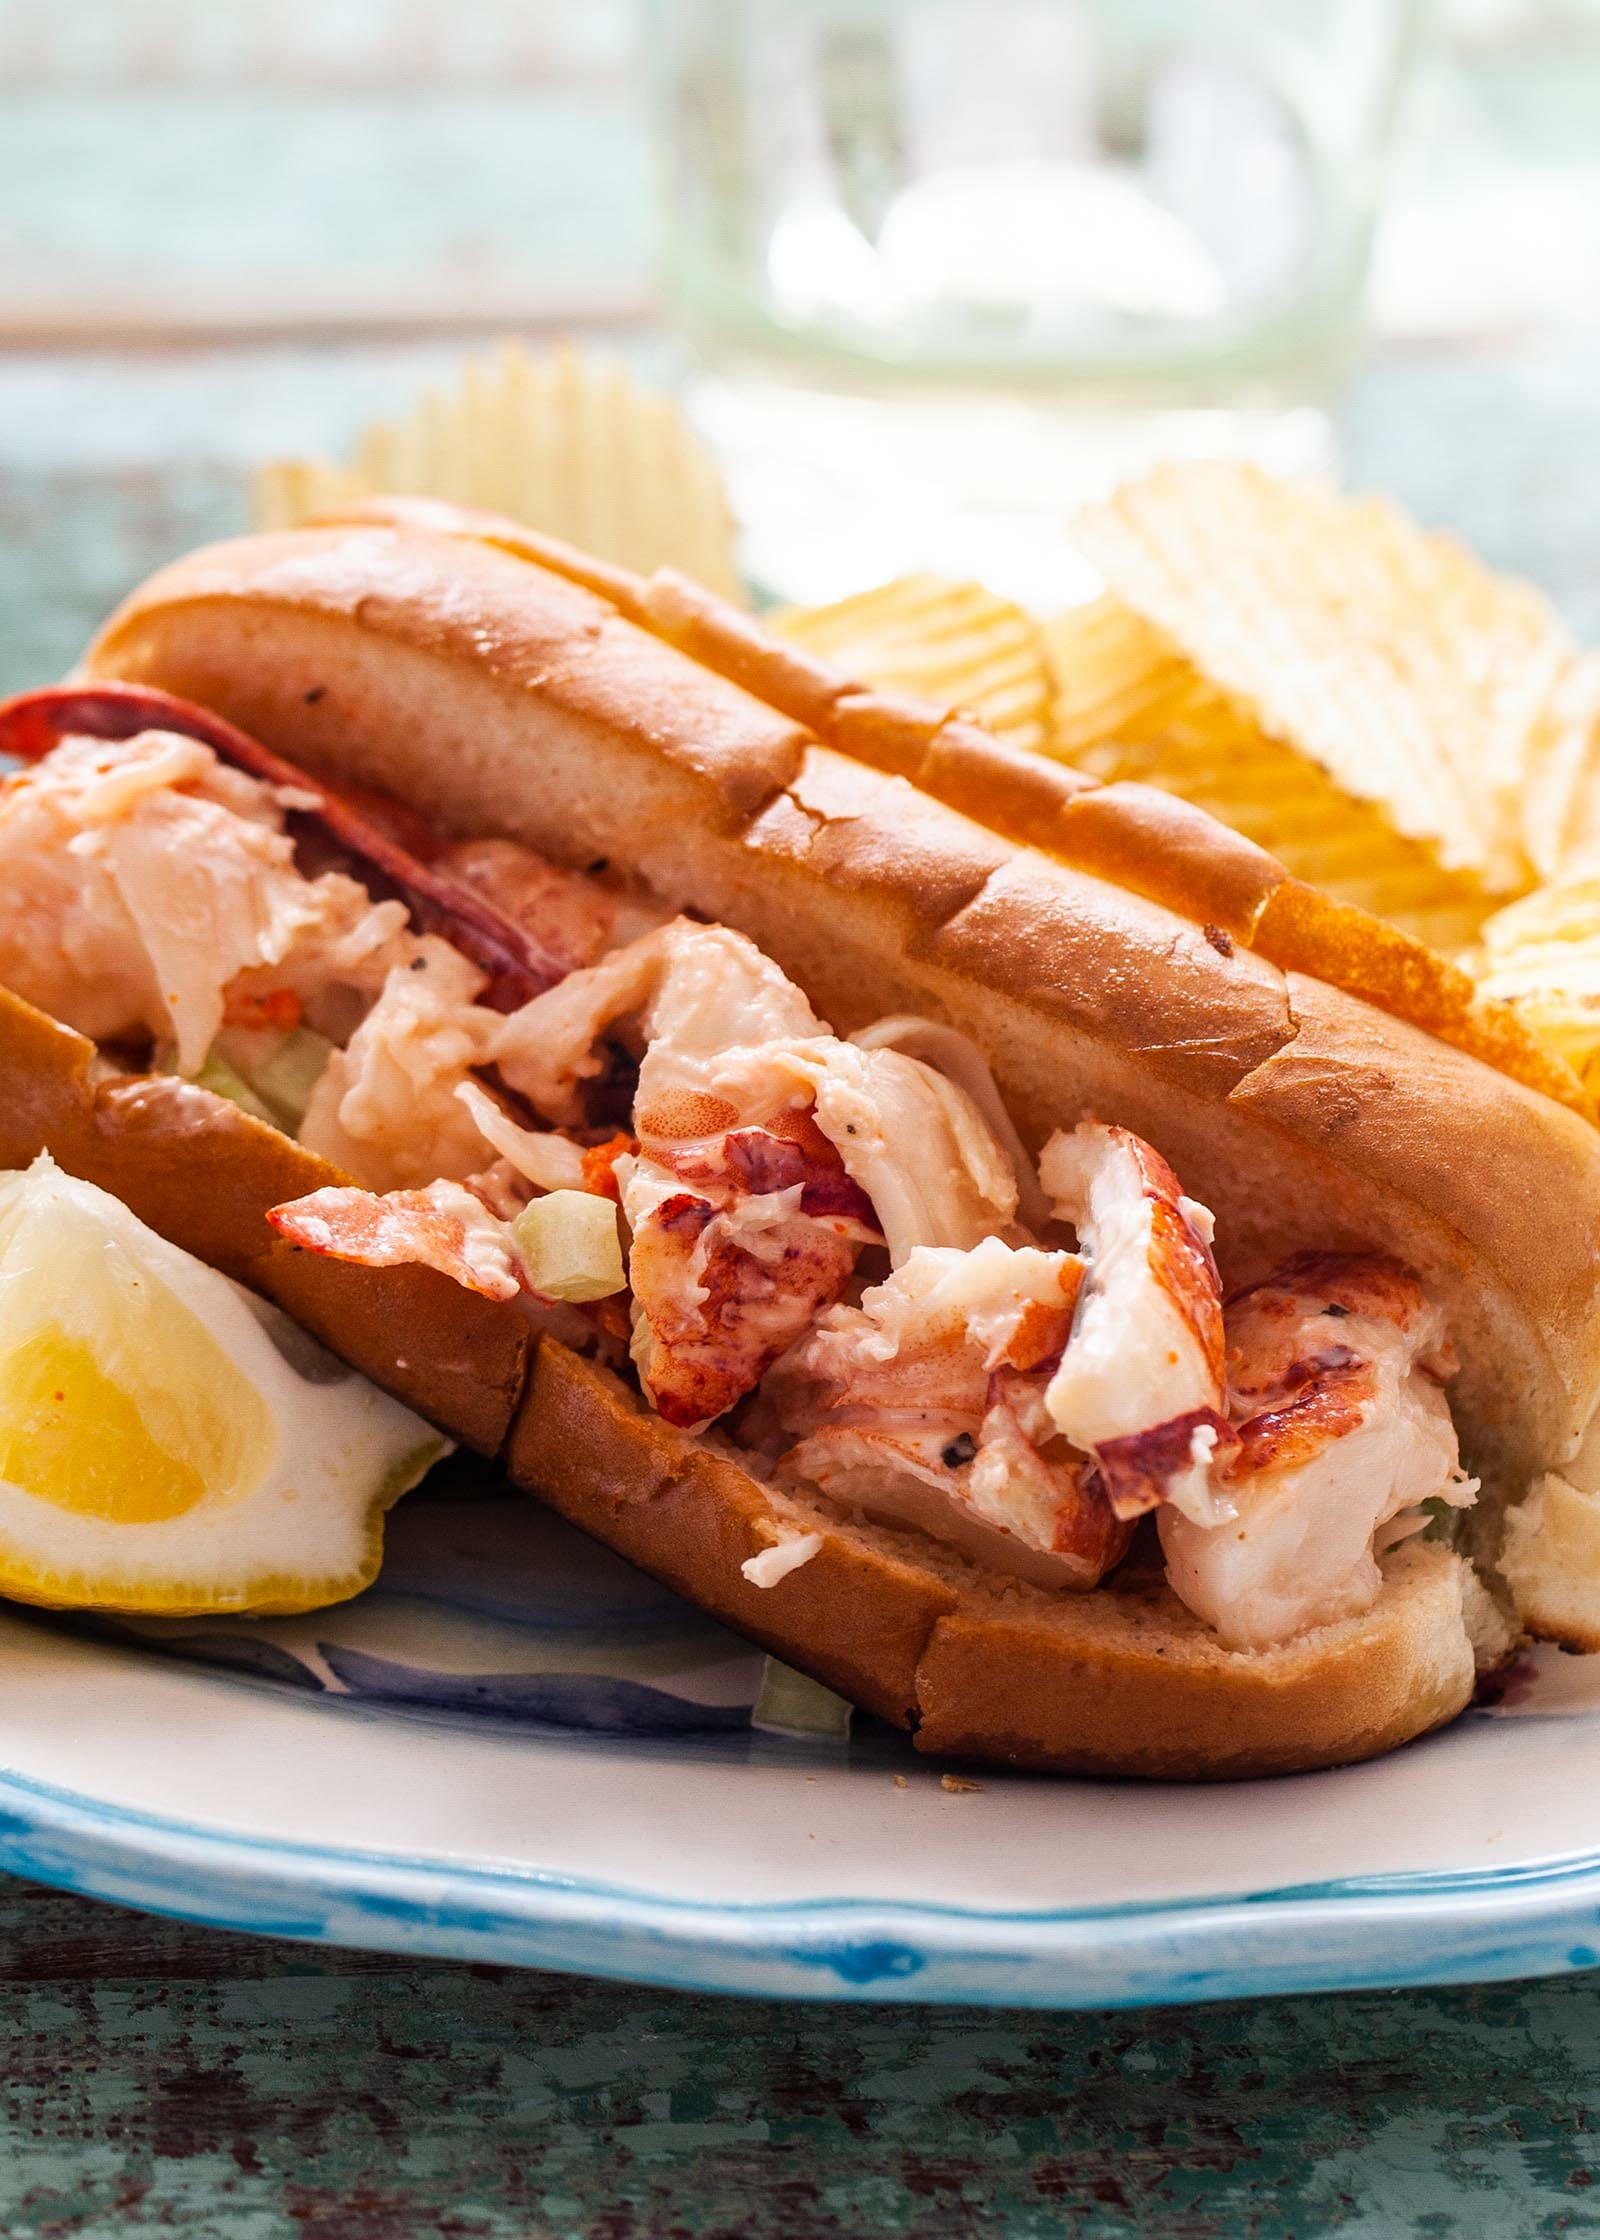 Side view of the best lobster roll recipe on a table. Lobster salad inside a toasted bun served with chips and lemon wedges. Glasses, plates and additional lobster salad are above the plate.